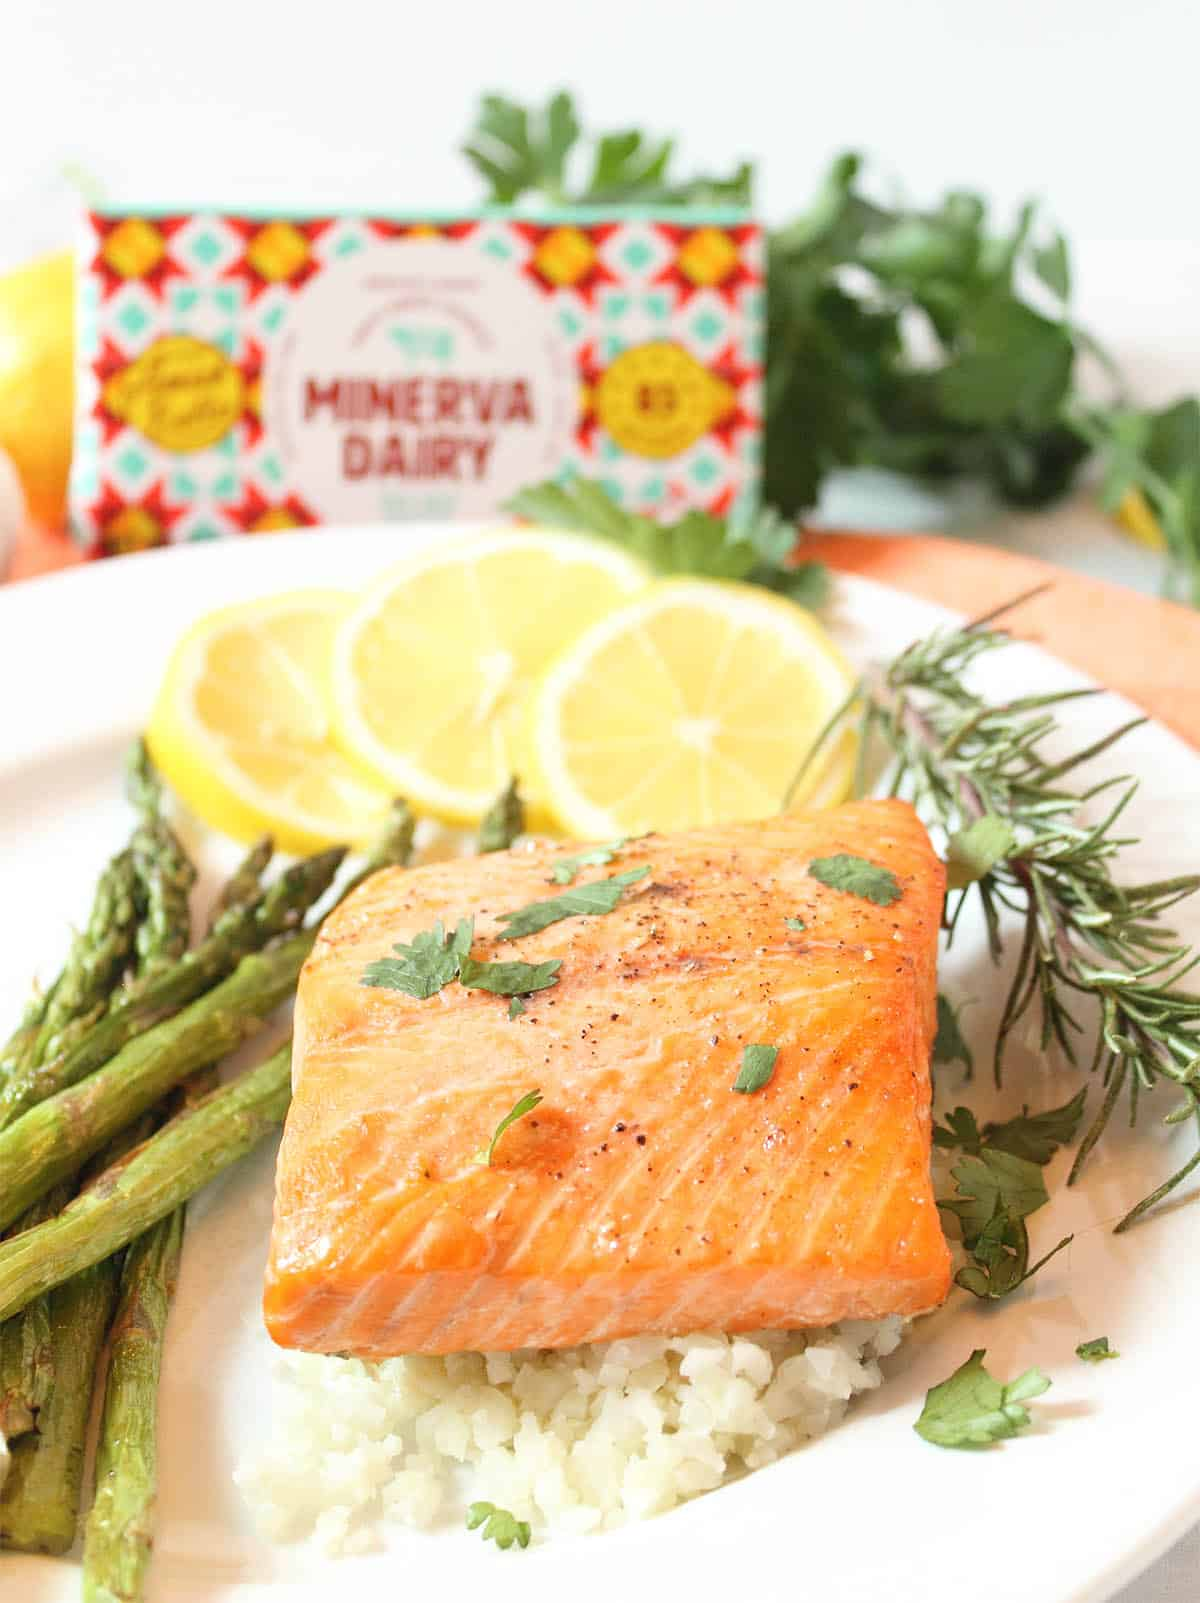 Salmon and asparagus dinner plated with Minerva butter package.